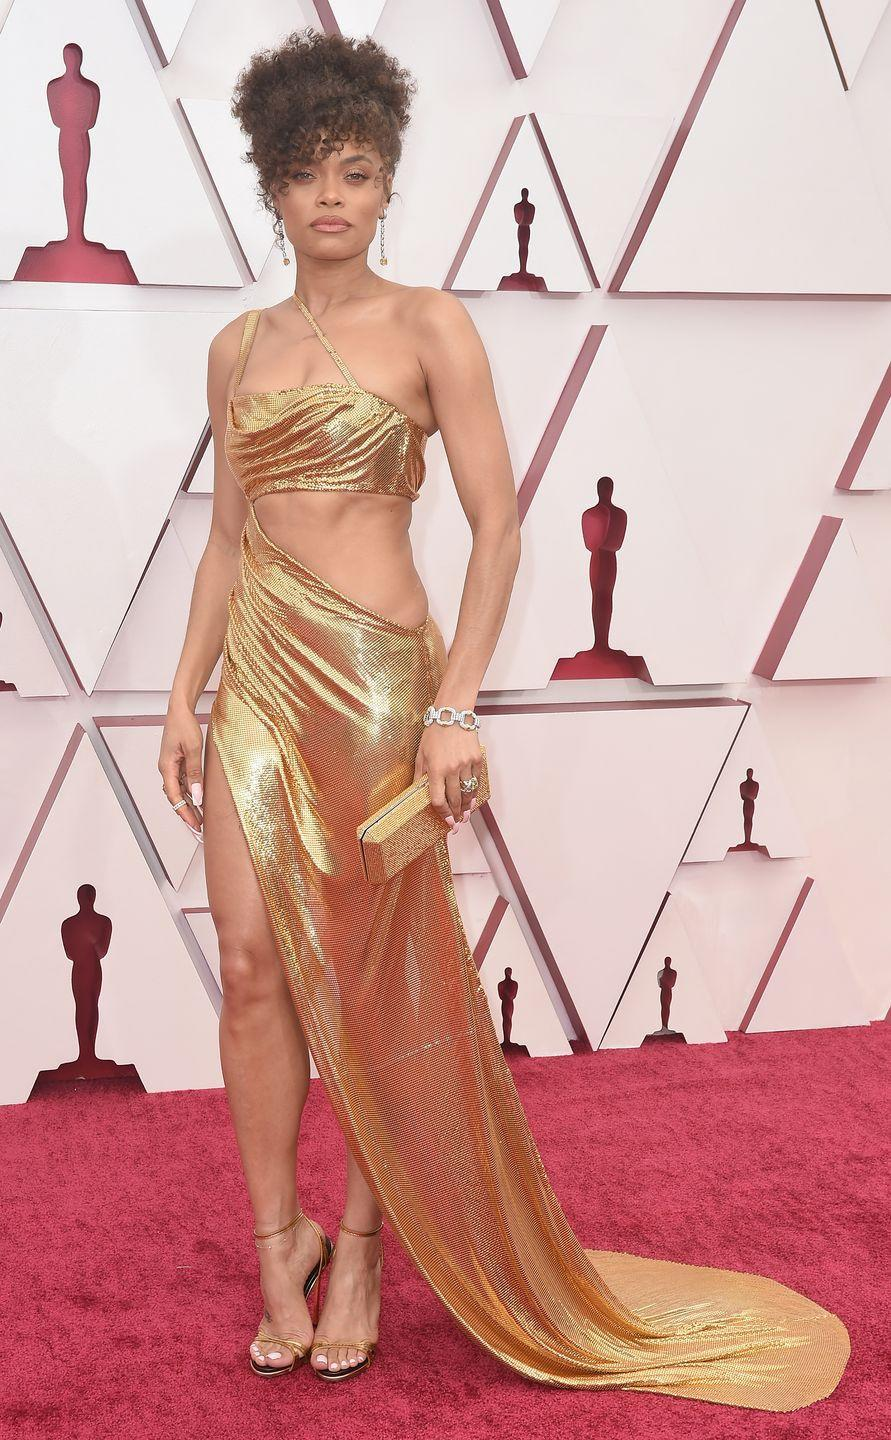 """<p>Andra Day has had quite the introductory award season on the red carpet with the actress pulling out all the stops throughout, and, she may have saved her best look for last. The star wore a very slinky gold gown by Vera Wang for the occasion, which she teamed with strappy heels and statement earrings by Tiffany & Co, a look which her <a href=""""https://www.instagram.com/p/COHTDvxlpFA/"""" rel=""""nofollow noopener"""" target=""""_blank"""" data-ylk=""""slk:stylist Wouri Vice said was inspired by Cher."""" class=""""link rapid-noclick-resp"""">stylist Wouri Vice said was inspired by Cher.</a></p>"""